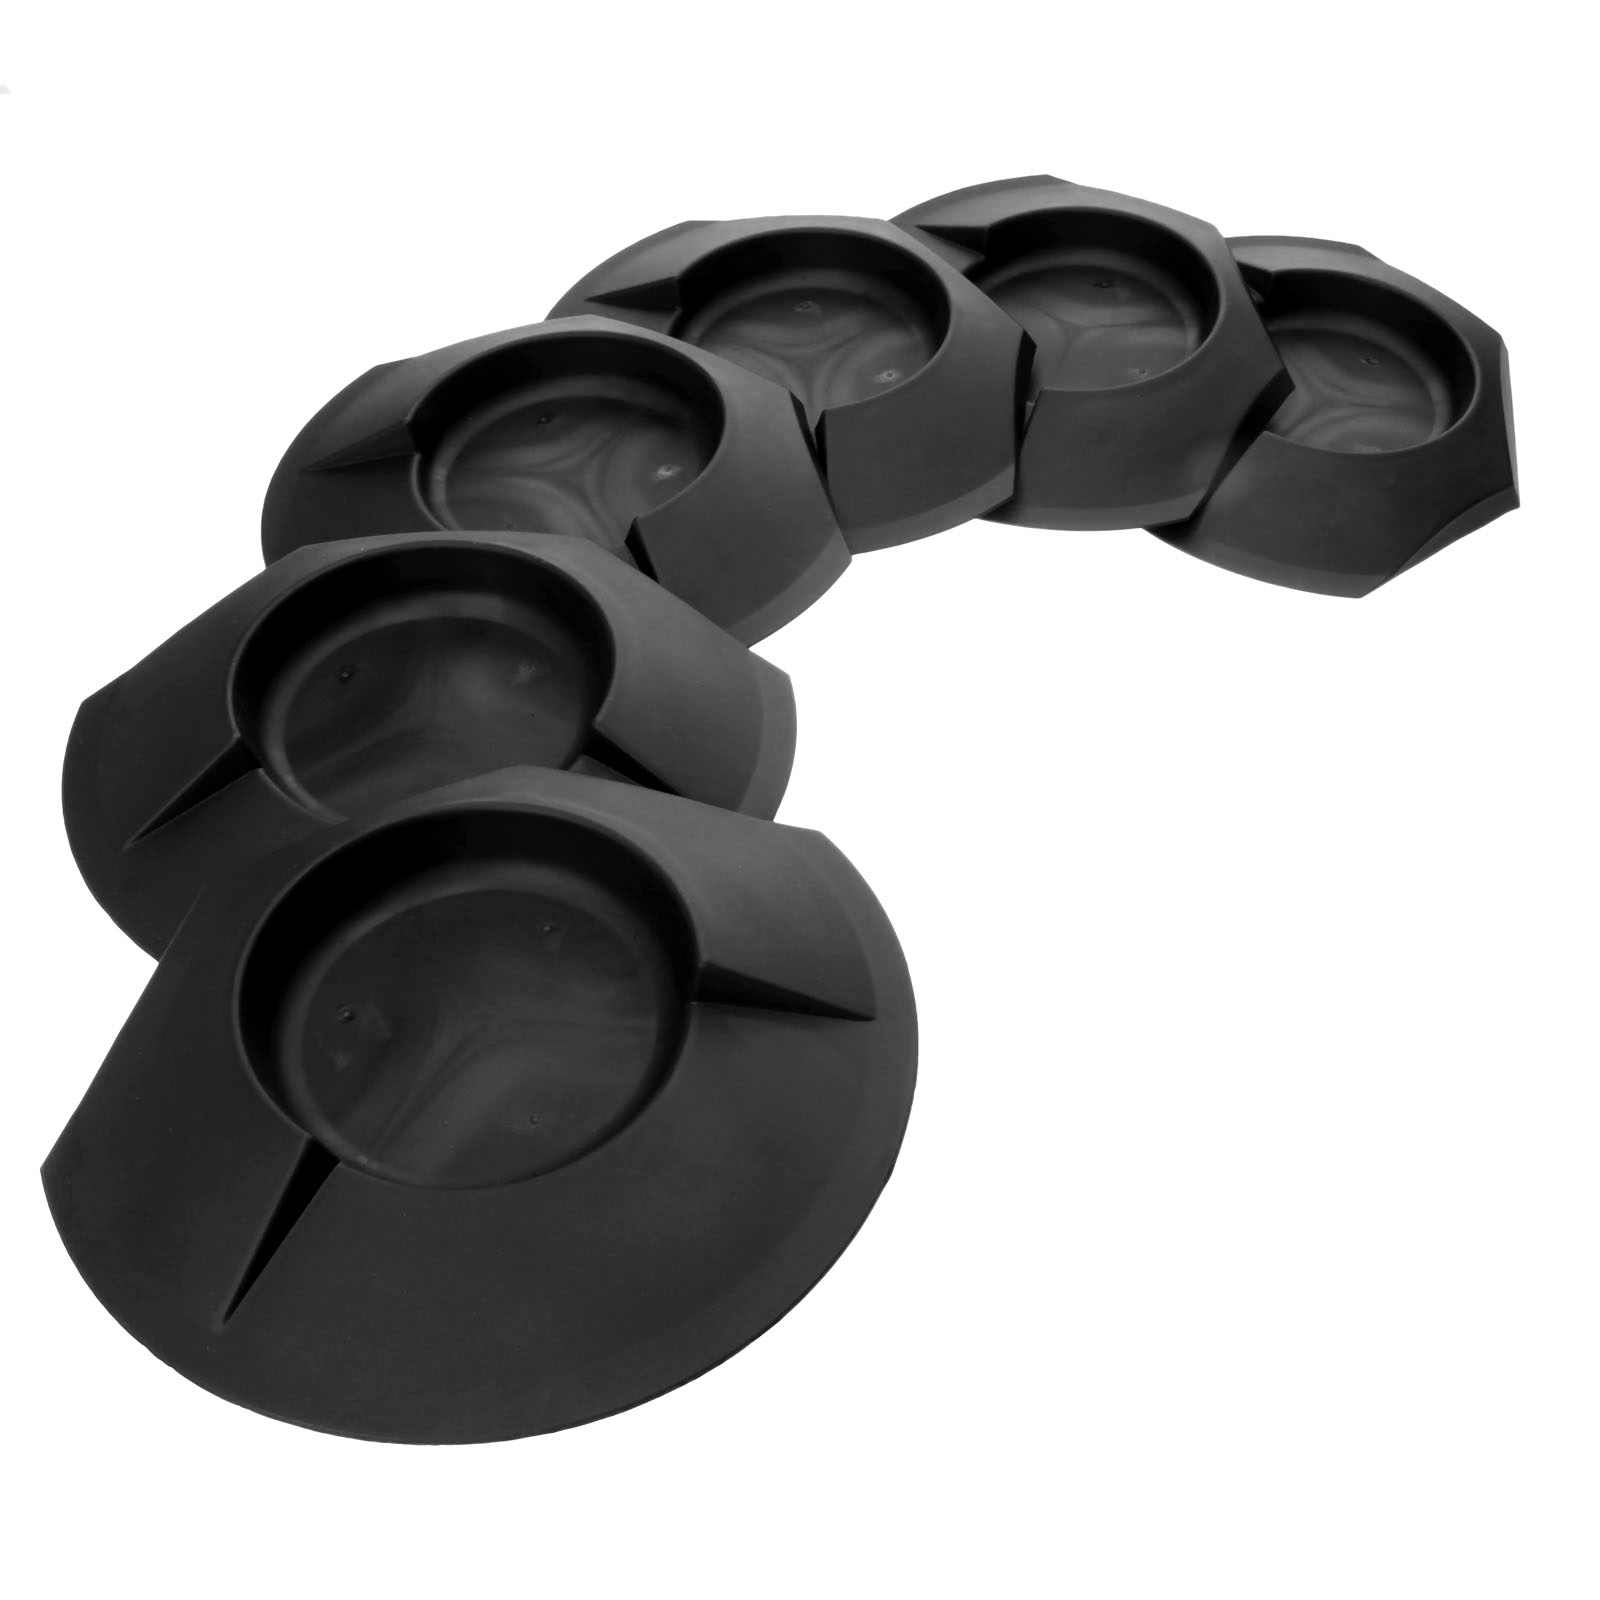 6Pcs Plastic Black Golf Putting Green Cup Home Backyard Training Aids Practice Accessories Golf Hole Putting Cups Indoor/Outdoor